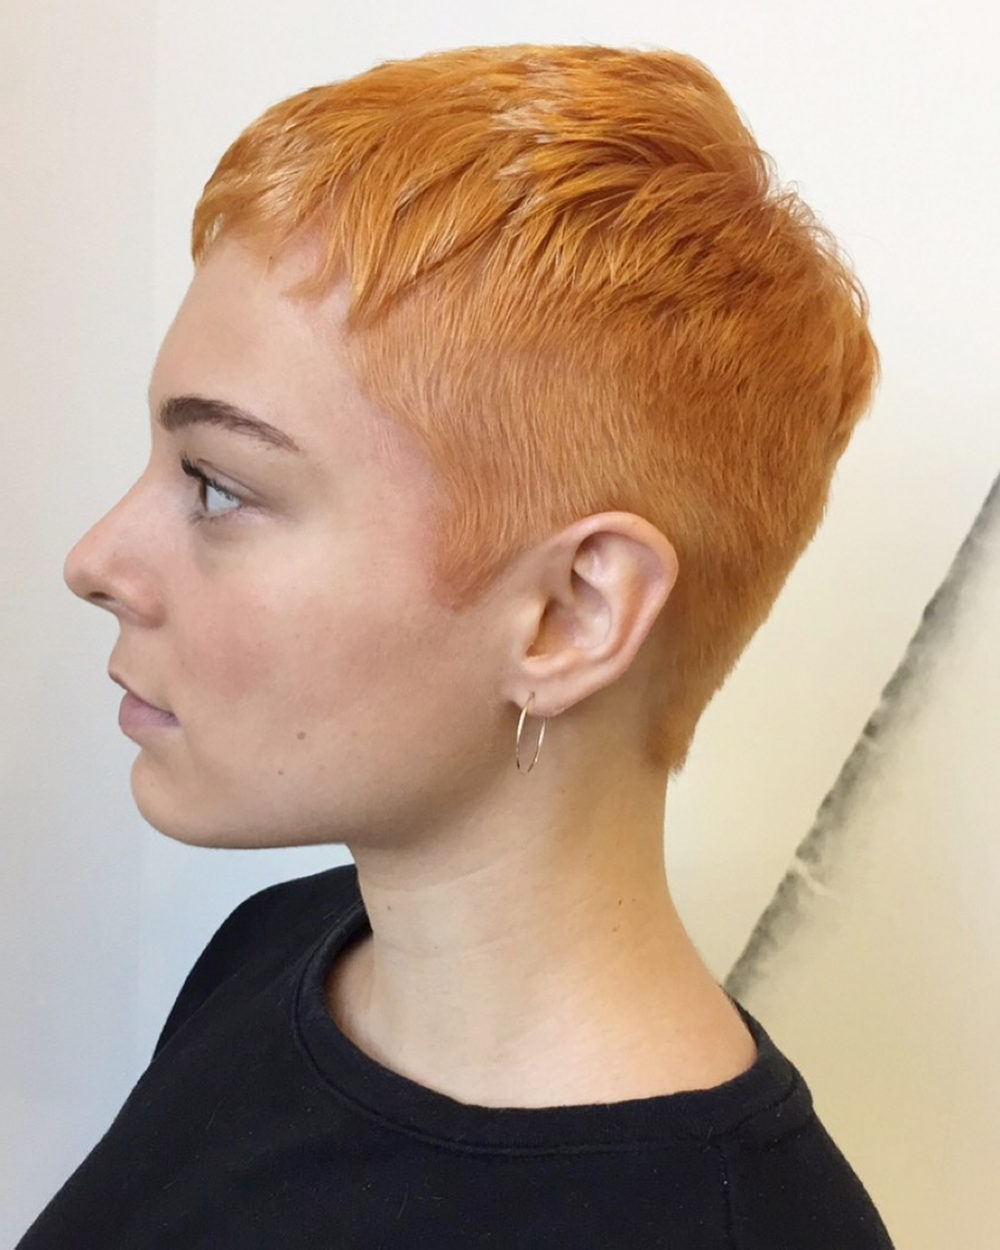 27 Very Short Haircuts You Have To See In 2018 Throughout Super Short Haircuts For Girls (View 2 of 25)